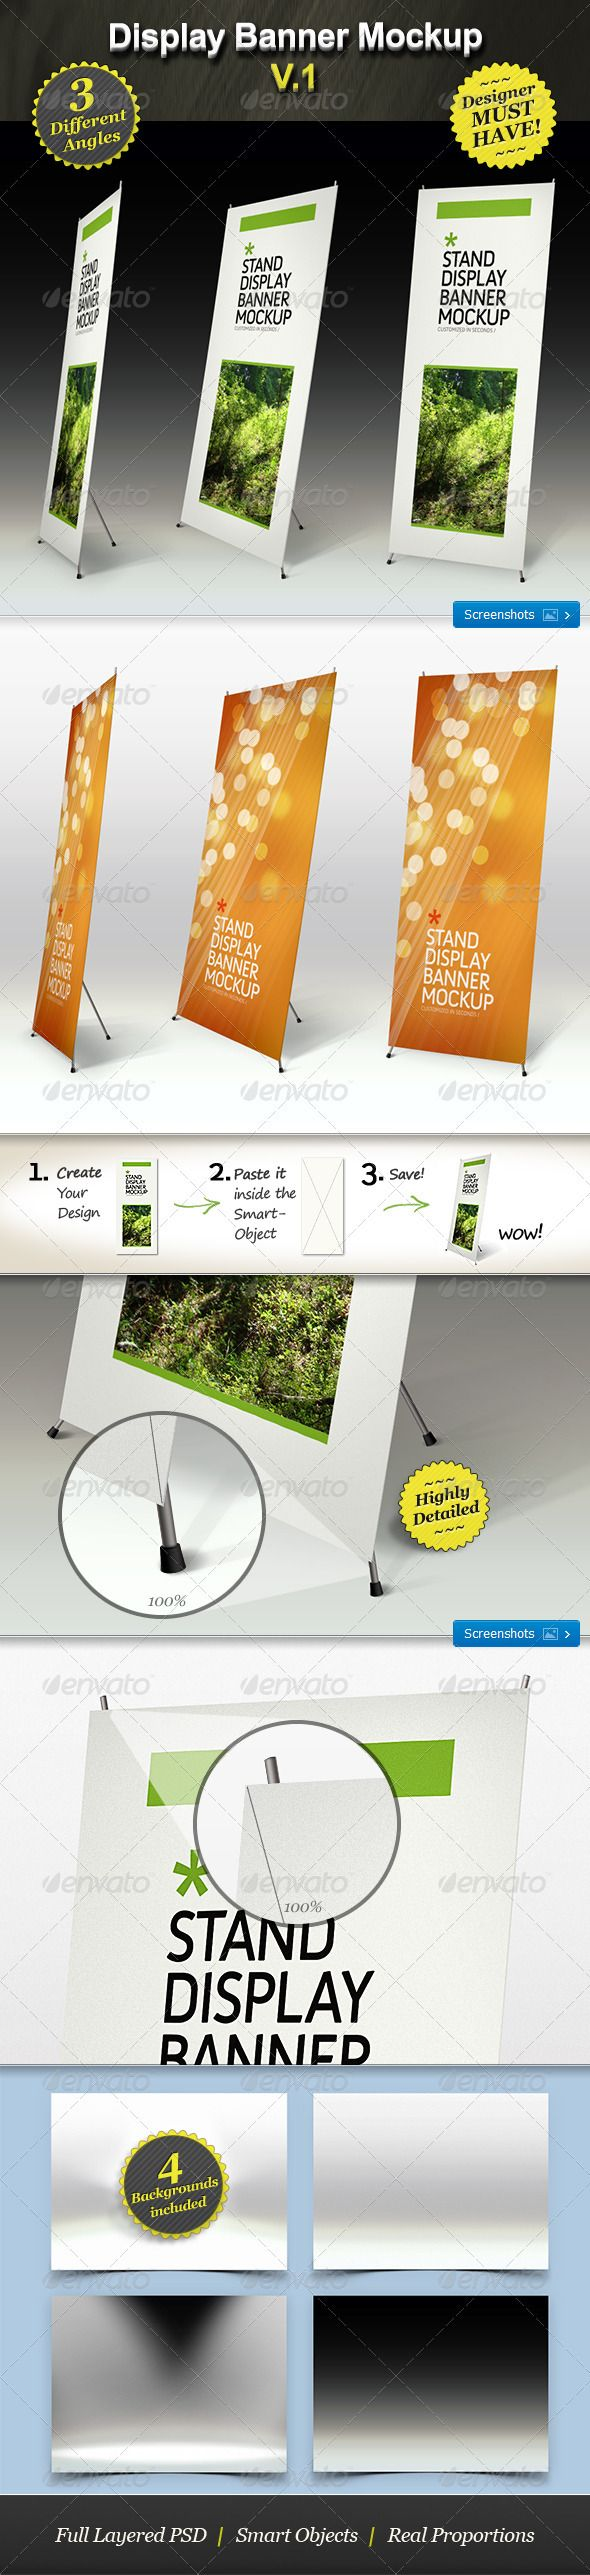 17 meilleures images propos de roll up design sur for Exemple de stand